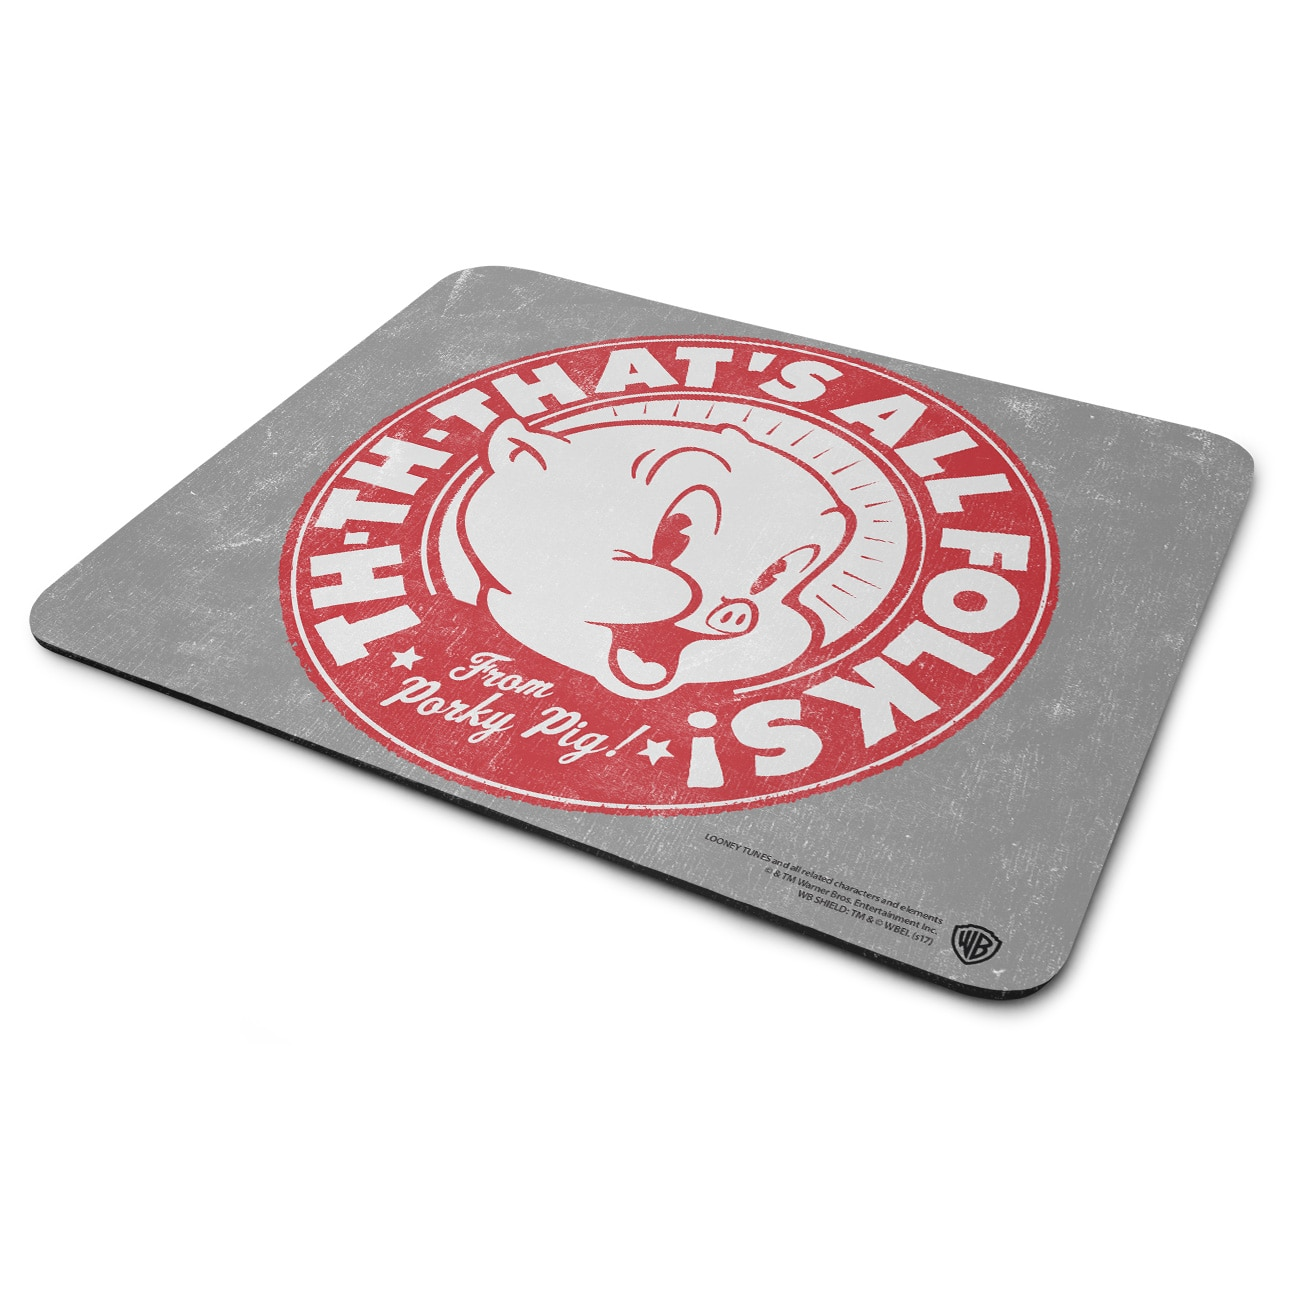 Porky Pig - That's All Folks! Mouse Pad